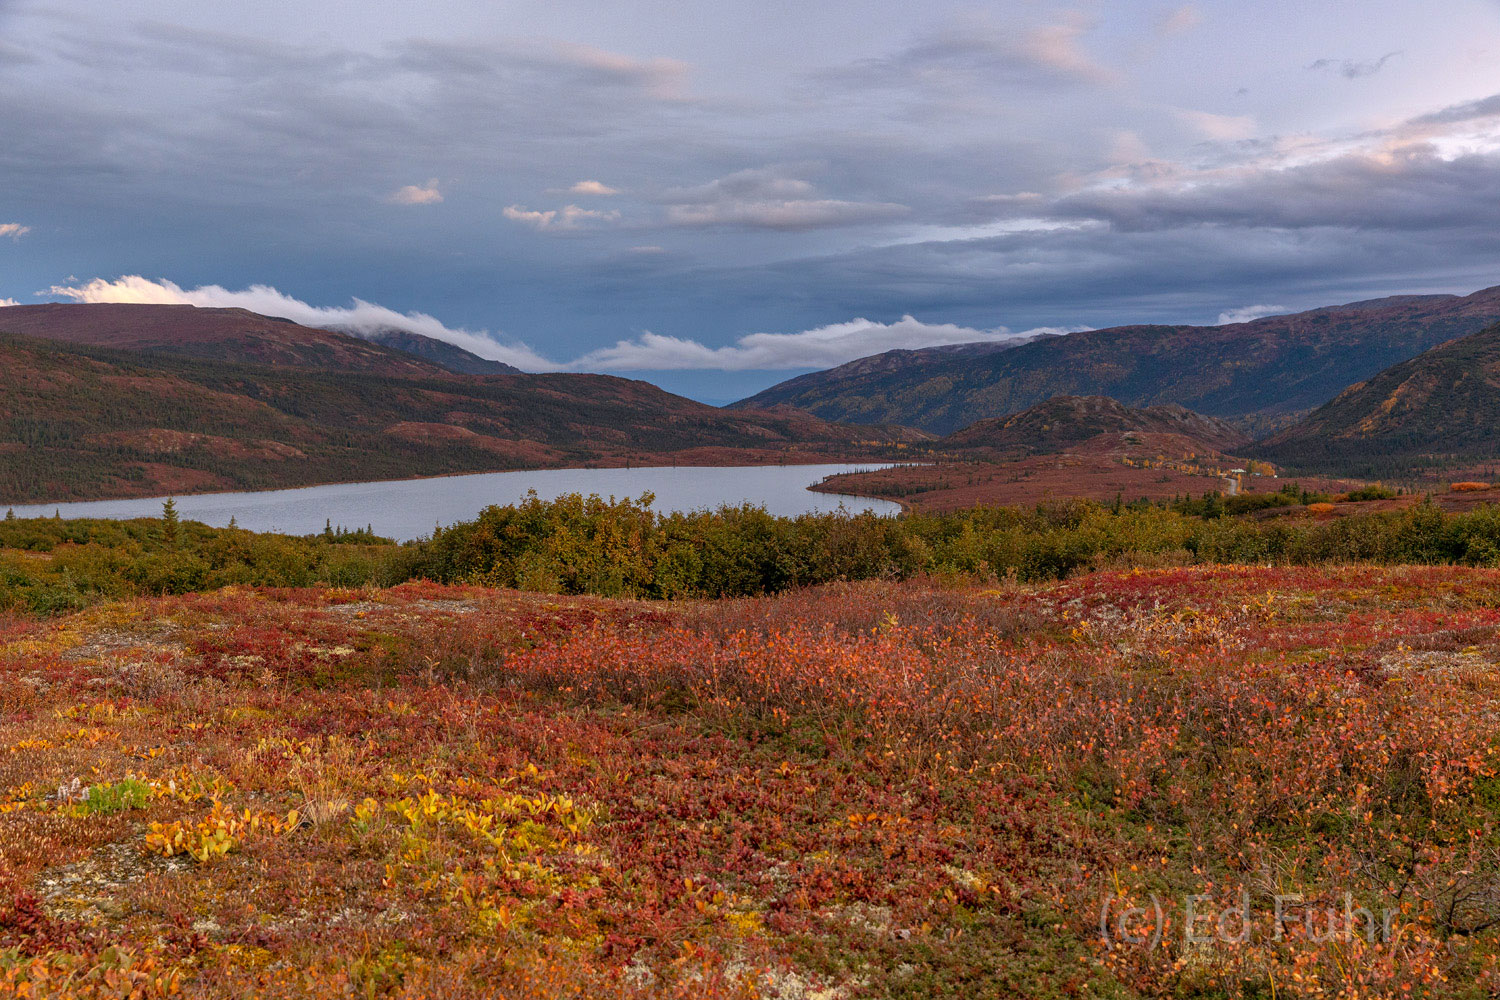 Banked by vast fields of blueberries, turned red by autmn's chill, Wonder Lake stretches to Denali.